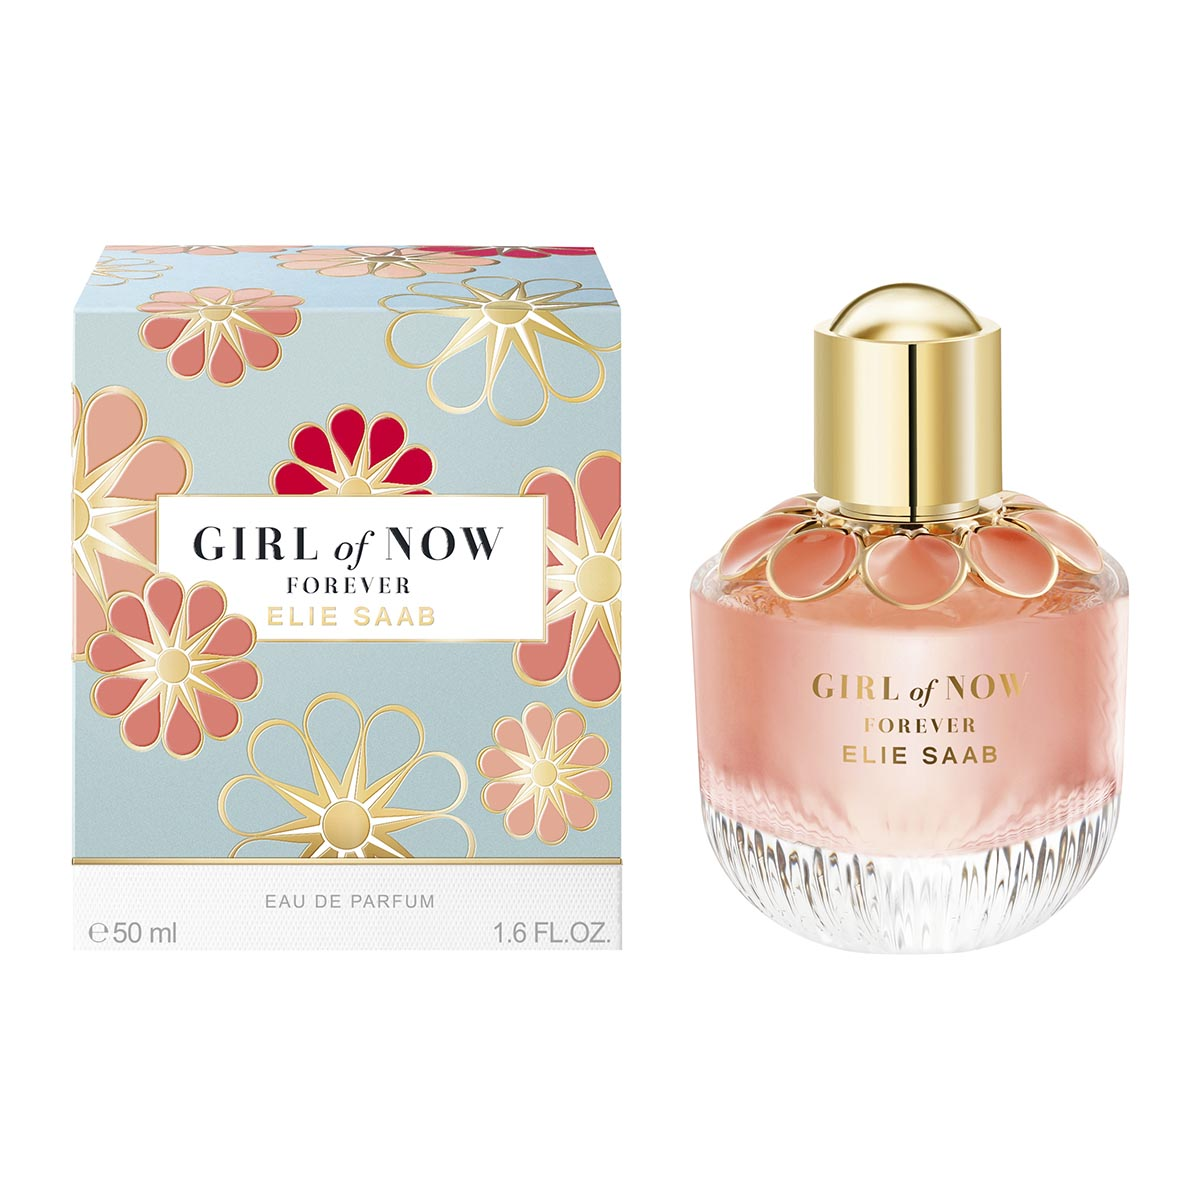 Elie saab girl of now forever eau de parfum 50ml vaporizador